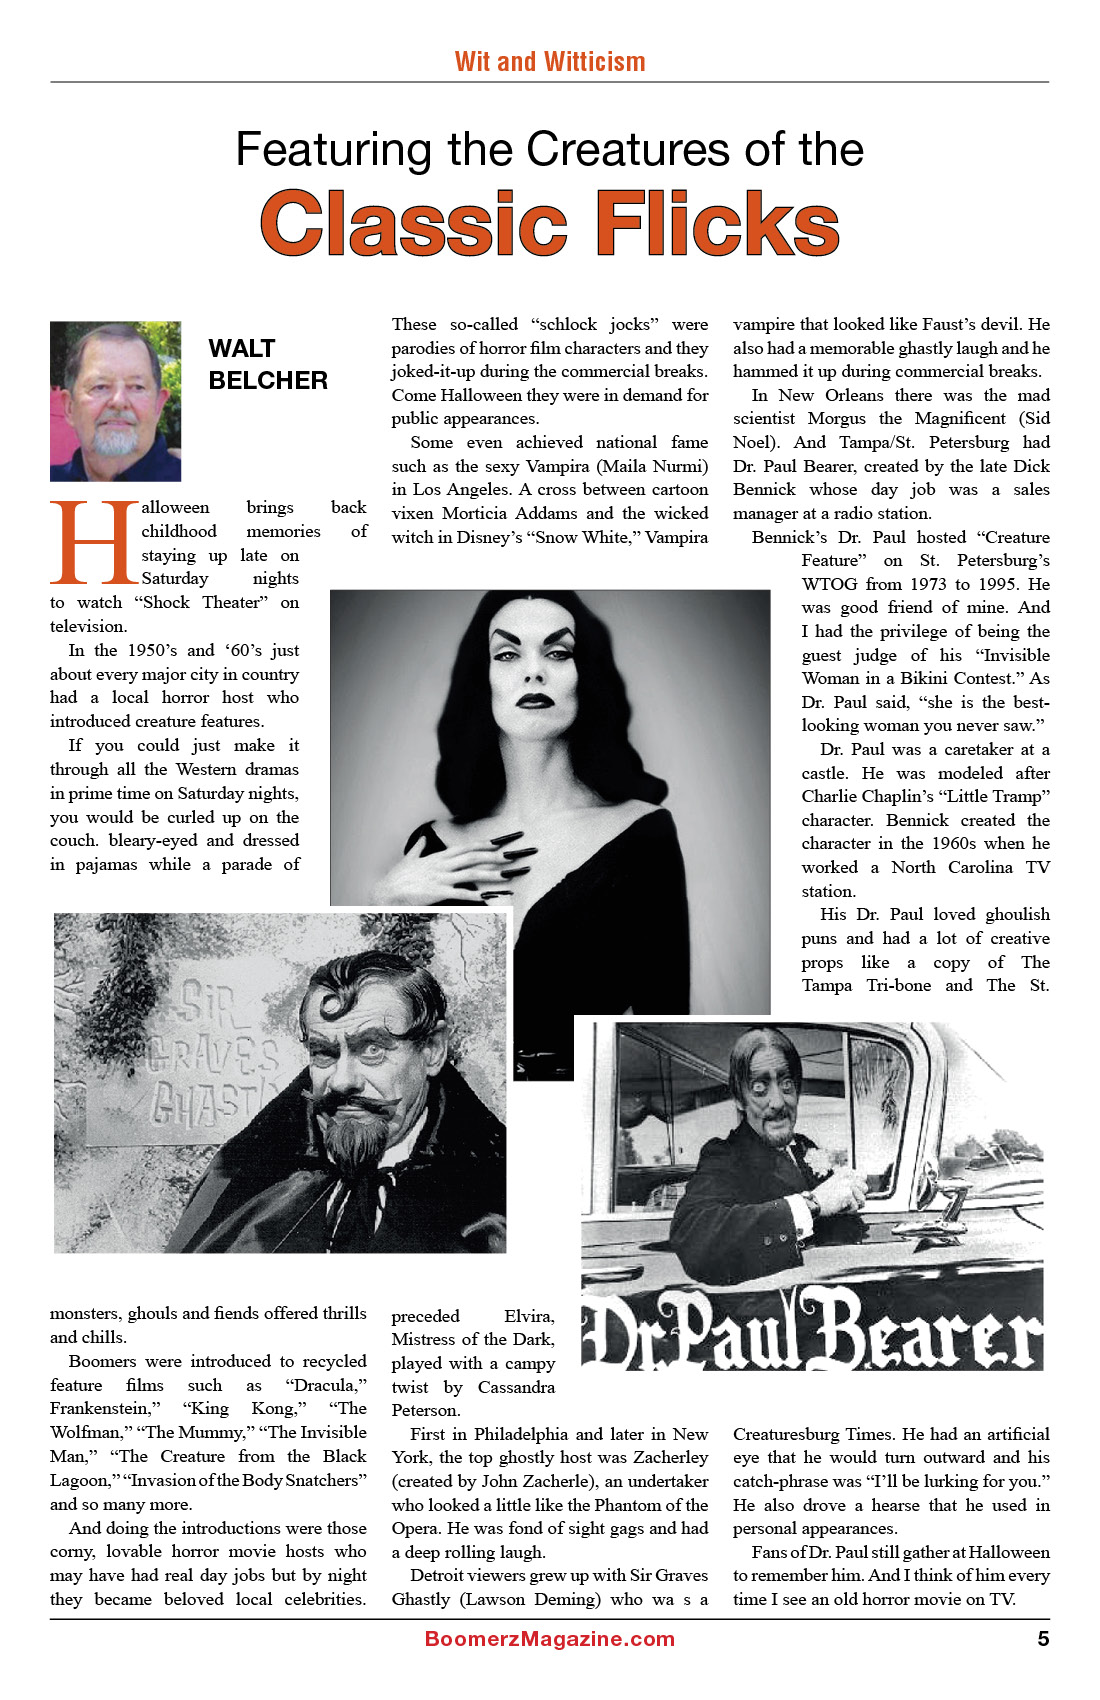 2018 October Boomerz Magazine Page 5 Walt Belcher on Dr Paul Bearer from Creature Feature tv show